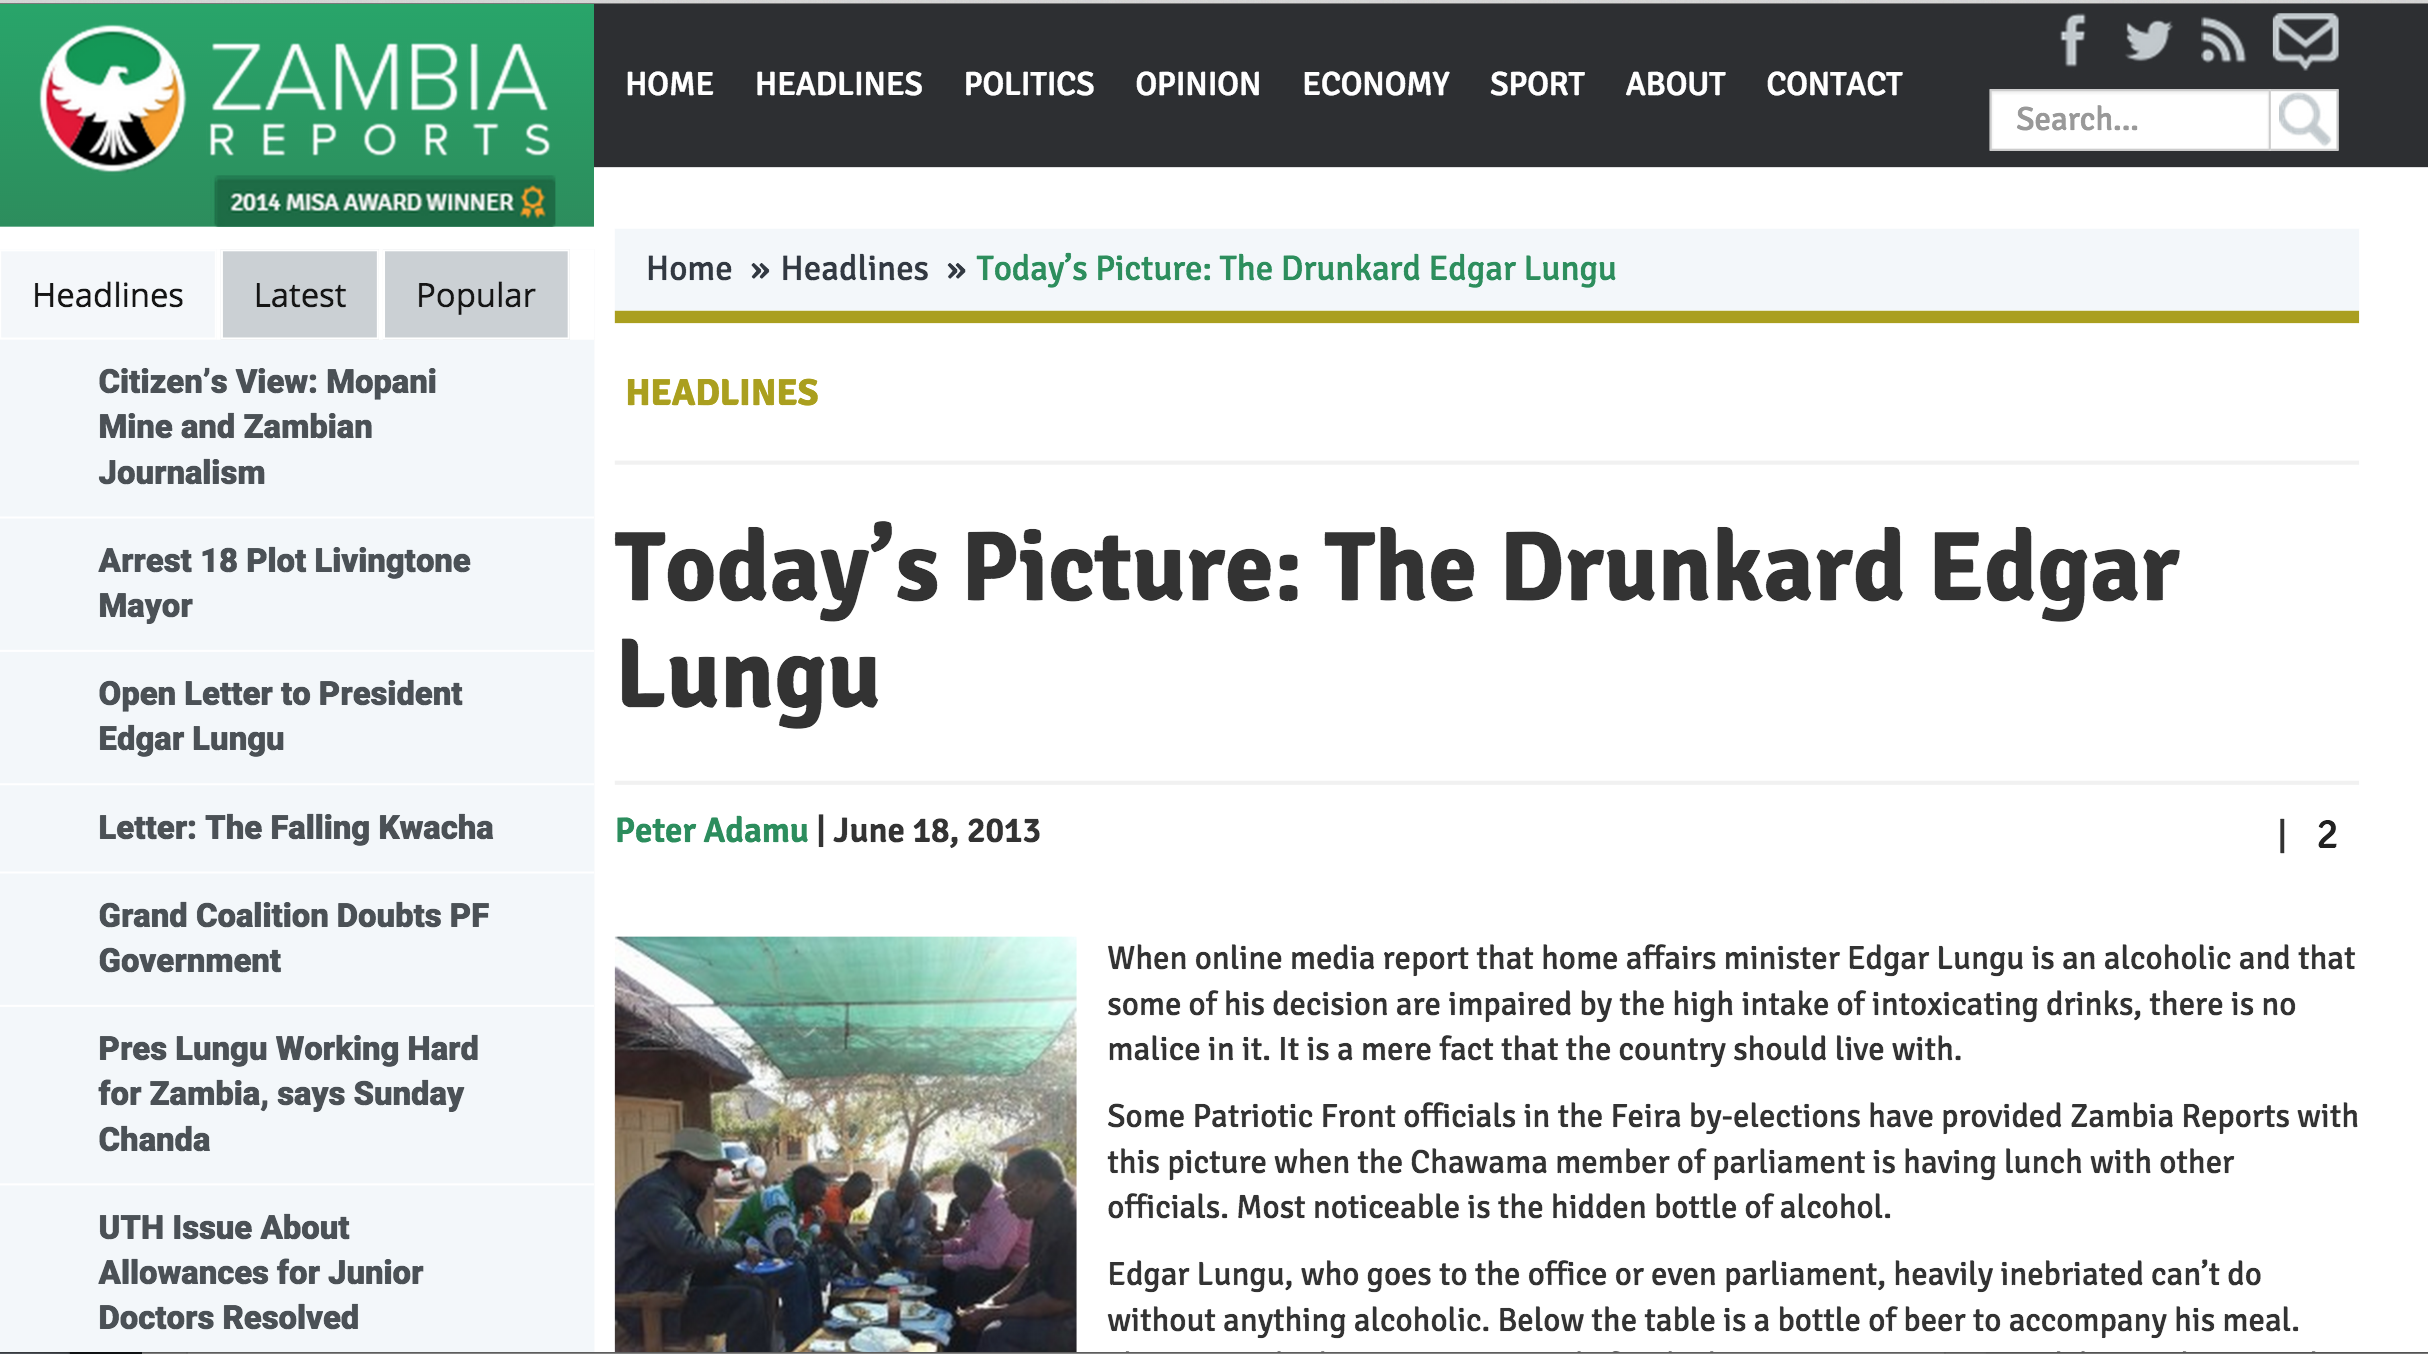 Flashback: Zambia Reports says Lungu is an alcoholic, his decisions impaired by beer